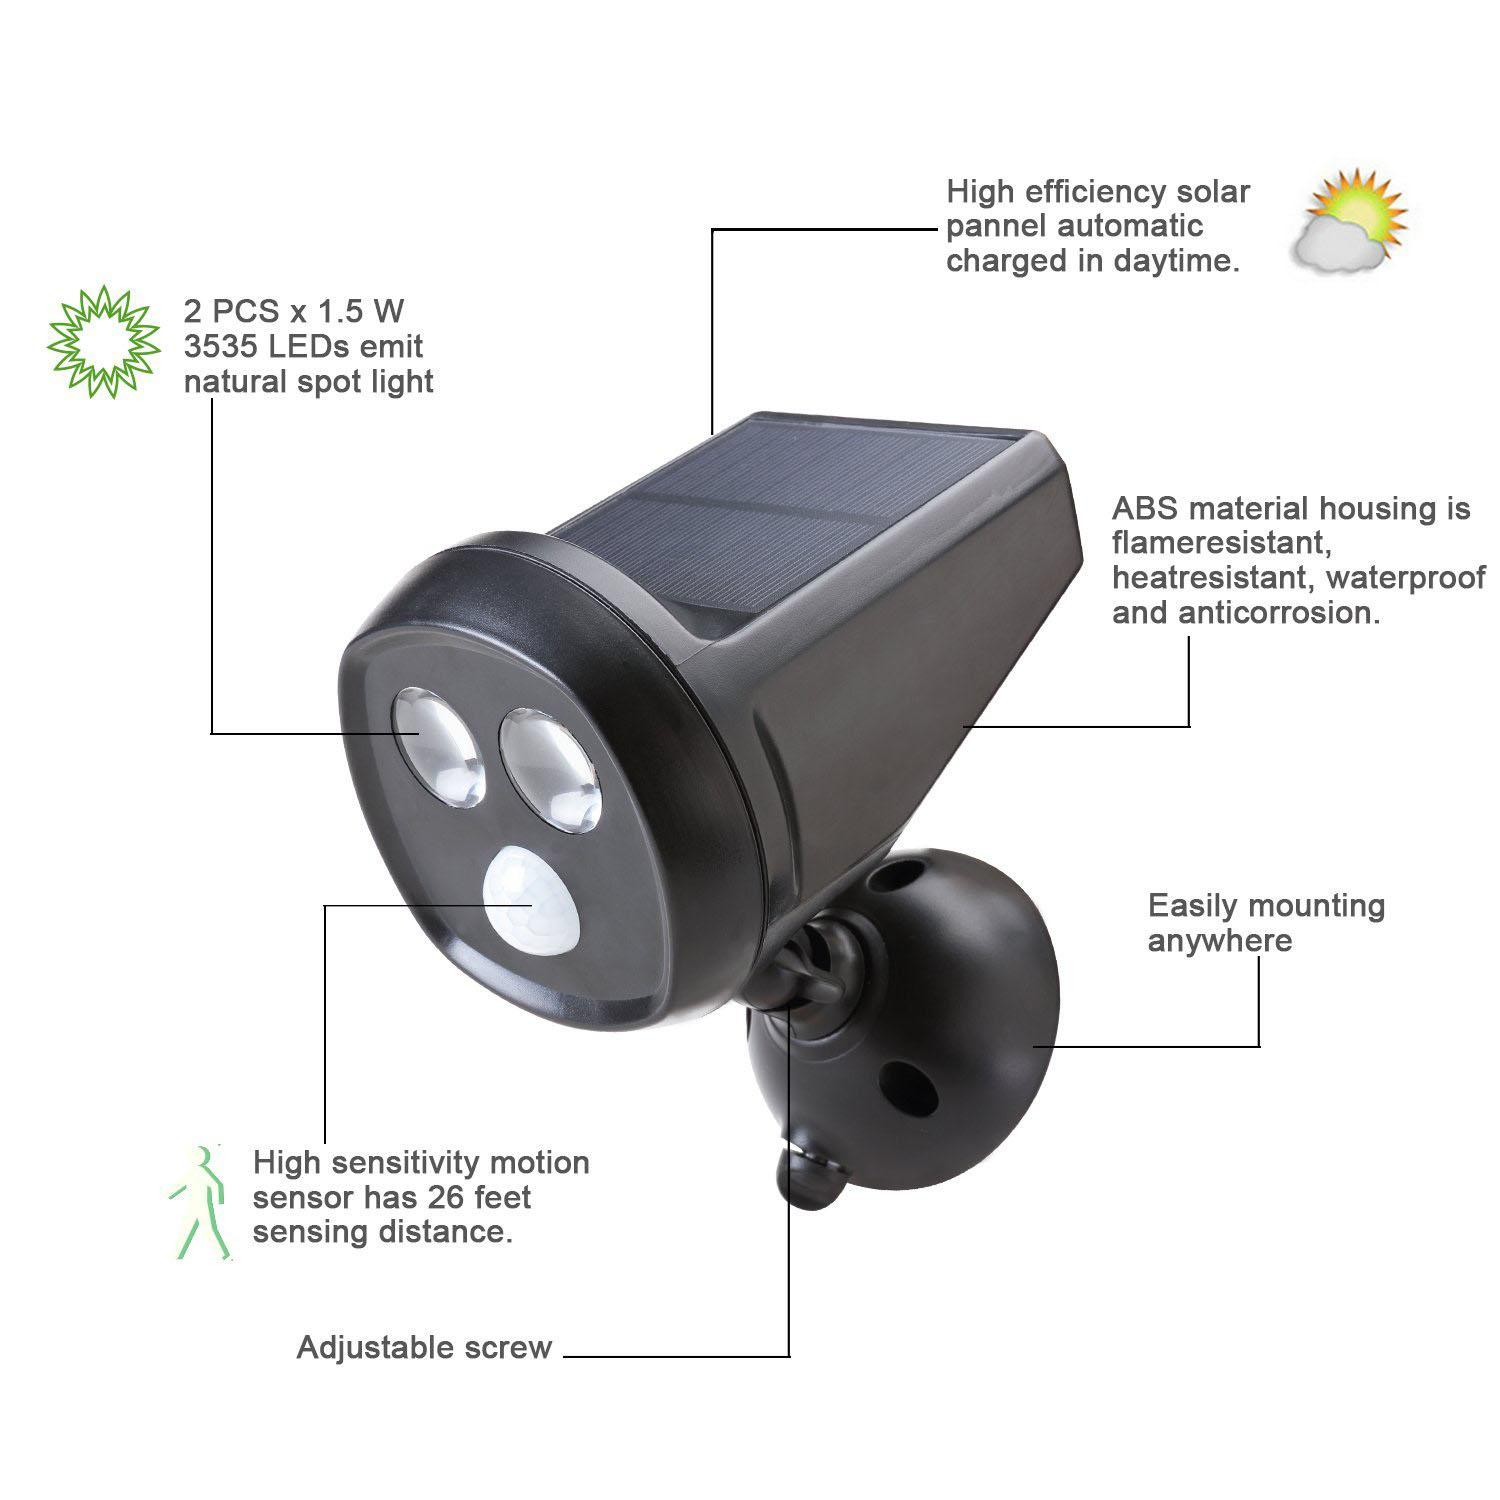 Wholesale outdoor wireless solar powered motion sensor detection led wholesale outdoor wireless solar powered motion sensor detection led landscape security light weatherproof spotlight wall floodlight lamp flood lights aloadofball